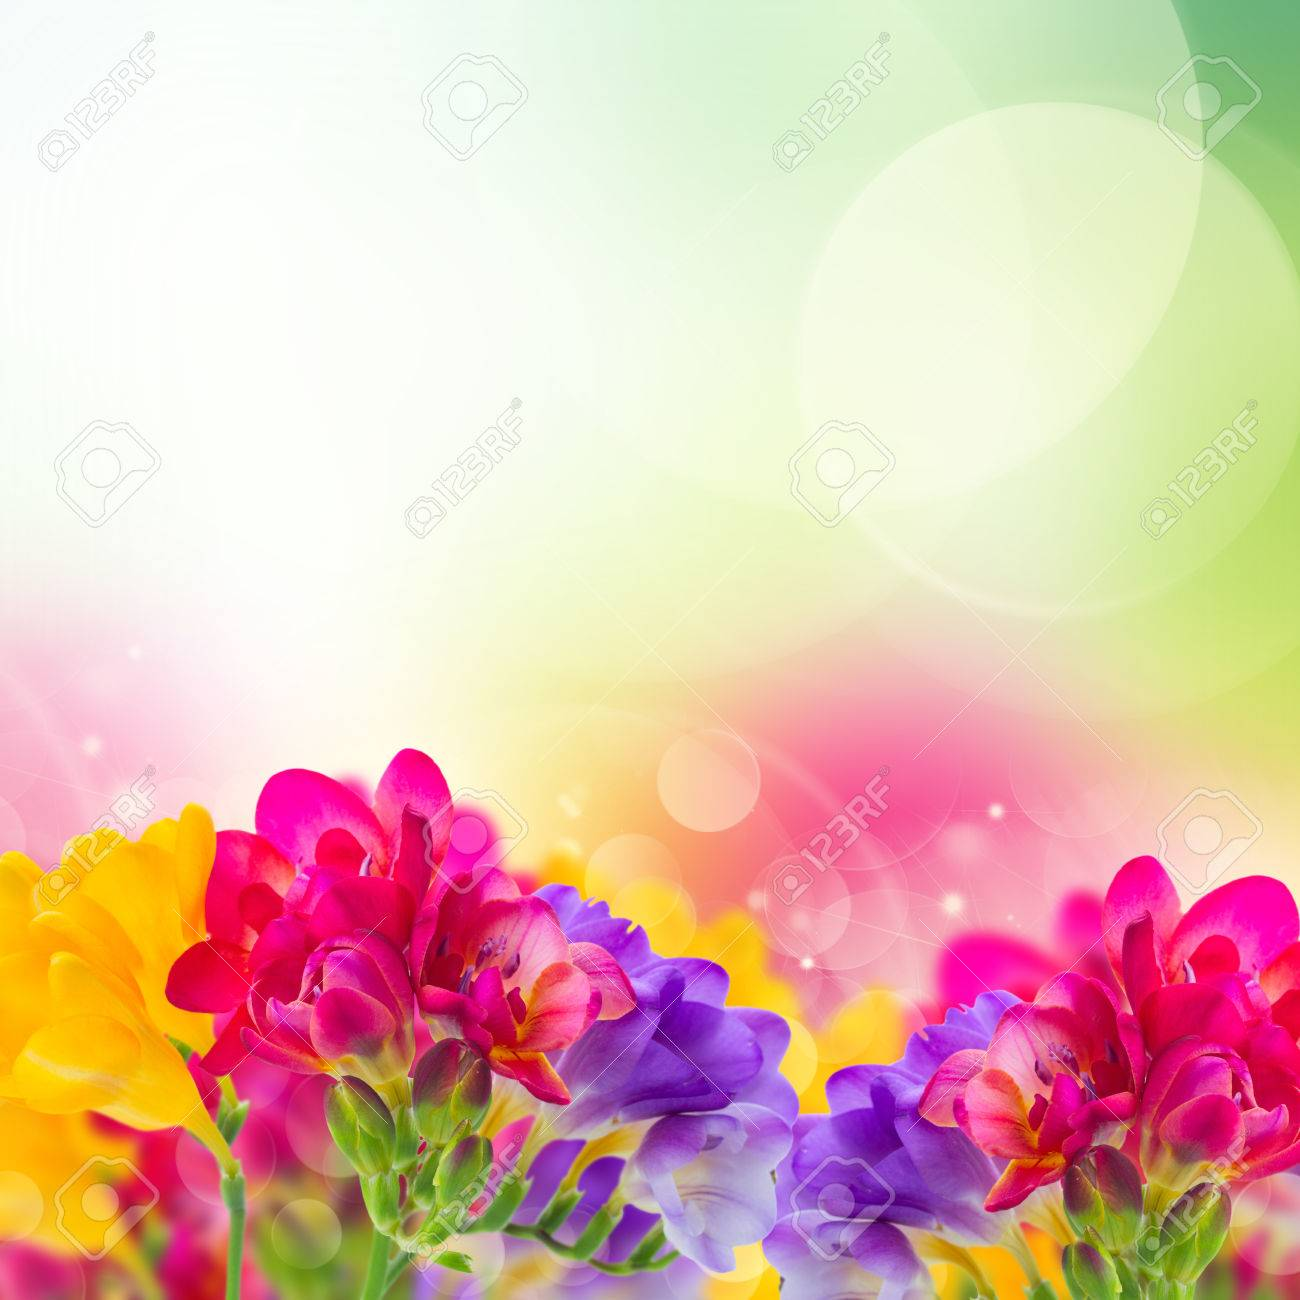 Blue pink and yellow freesia flowers border on garden bokeh stock blue pink and yellow freesia flowers border on garden bokeh background stock photo 34892521 mightylinksfo